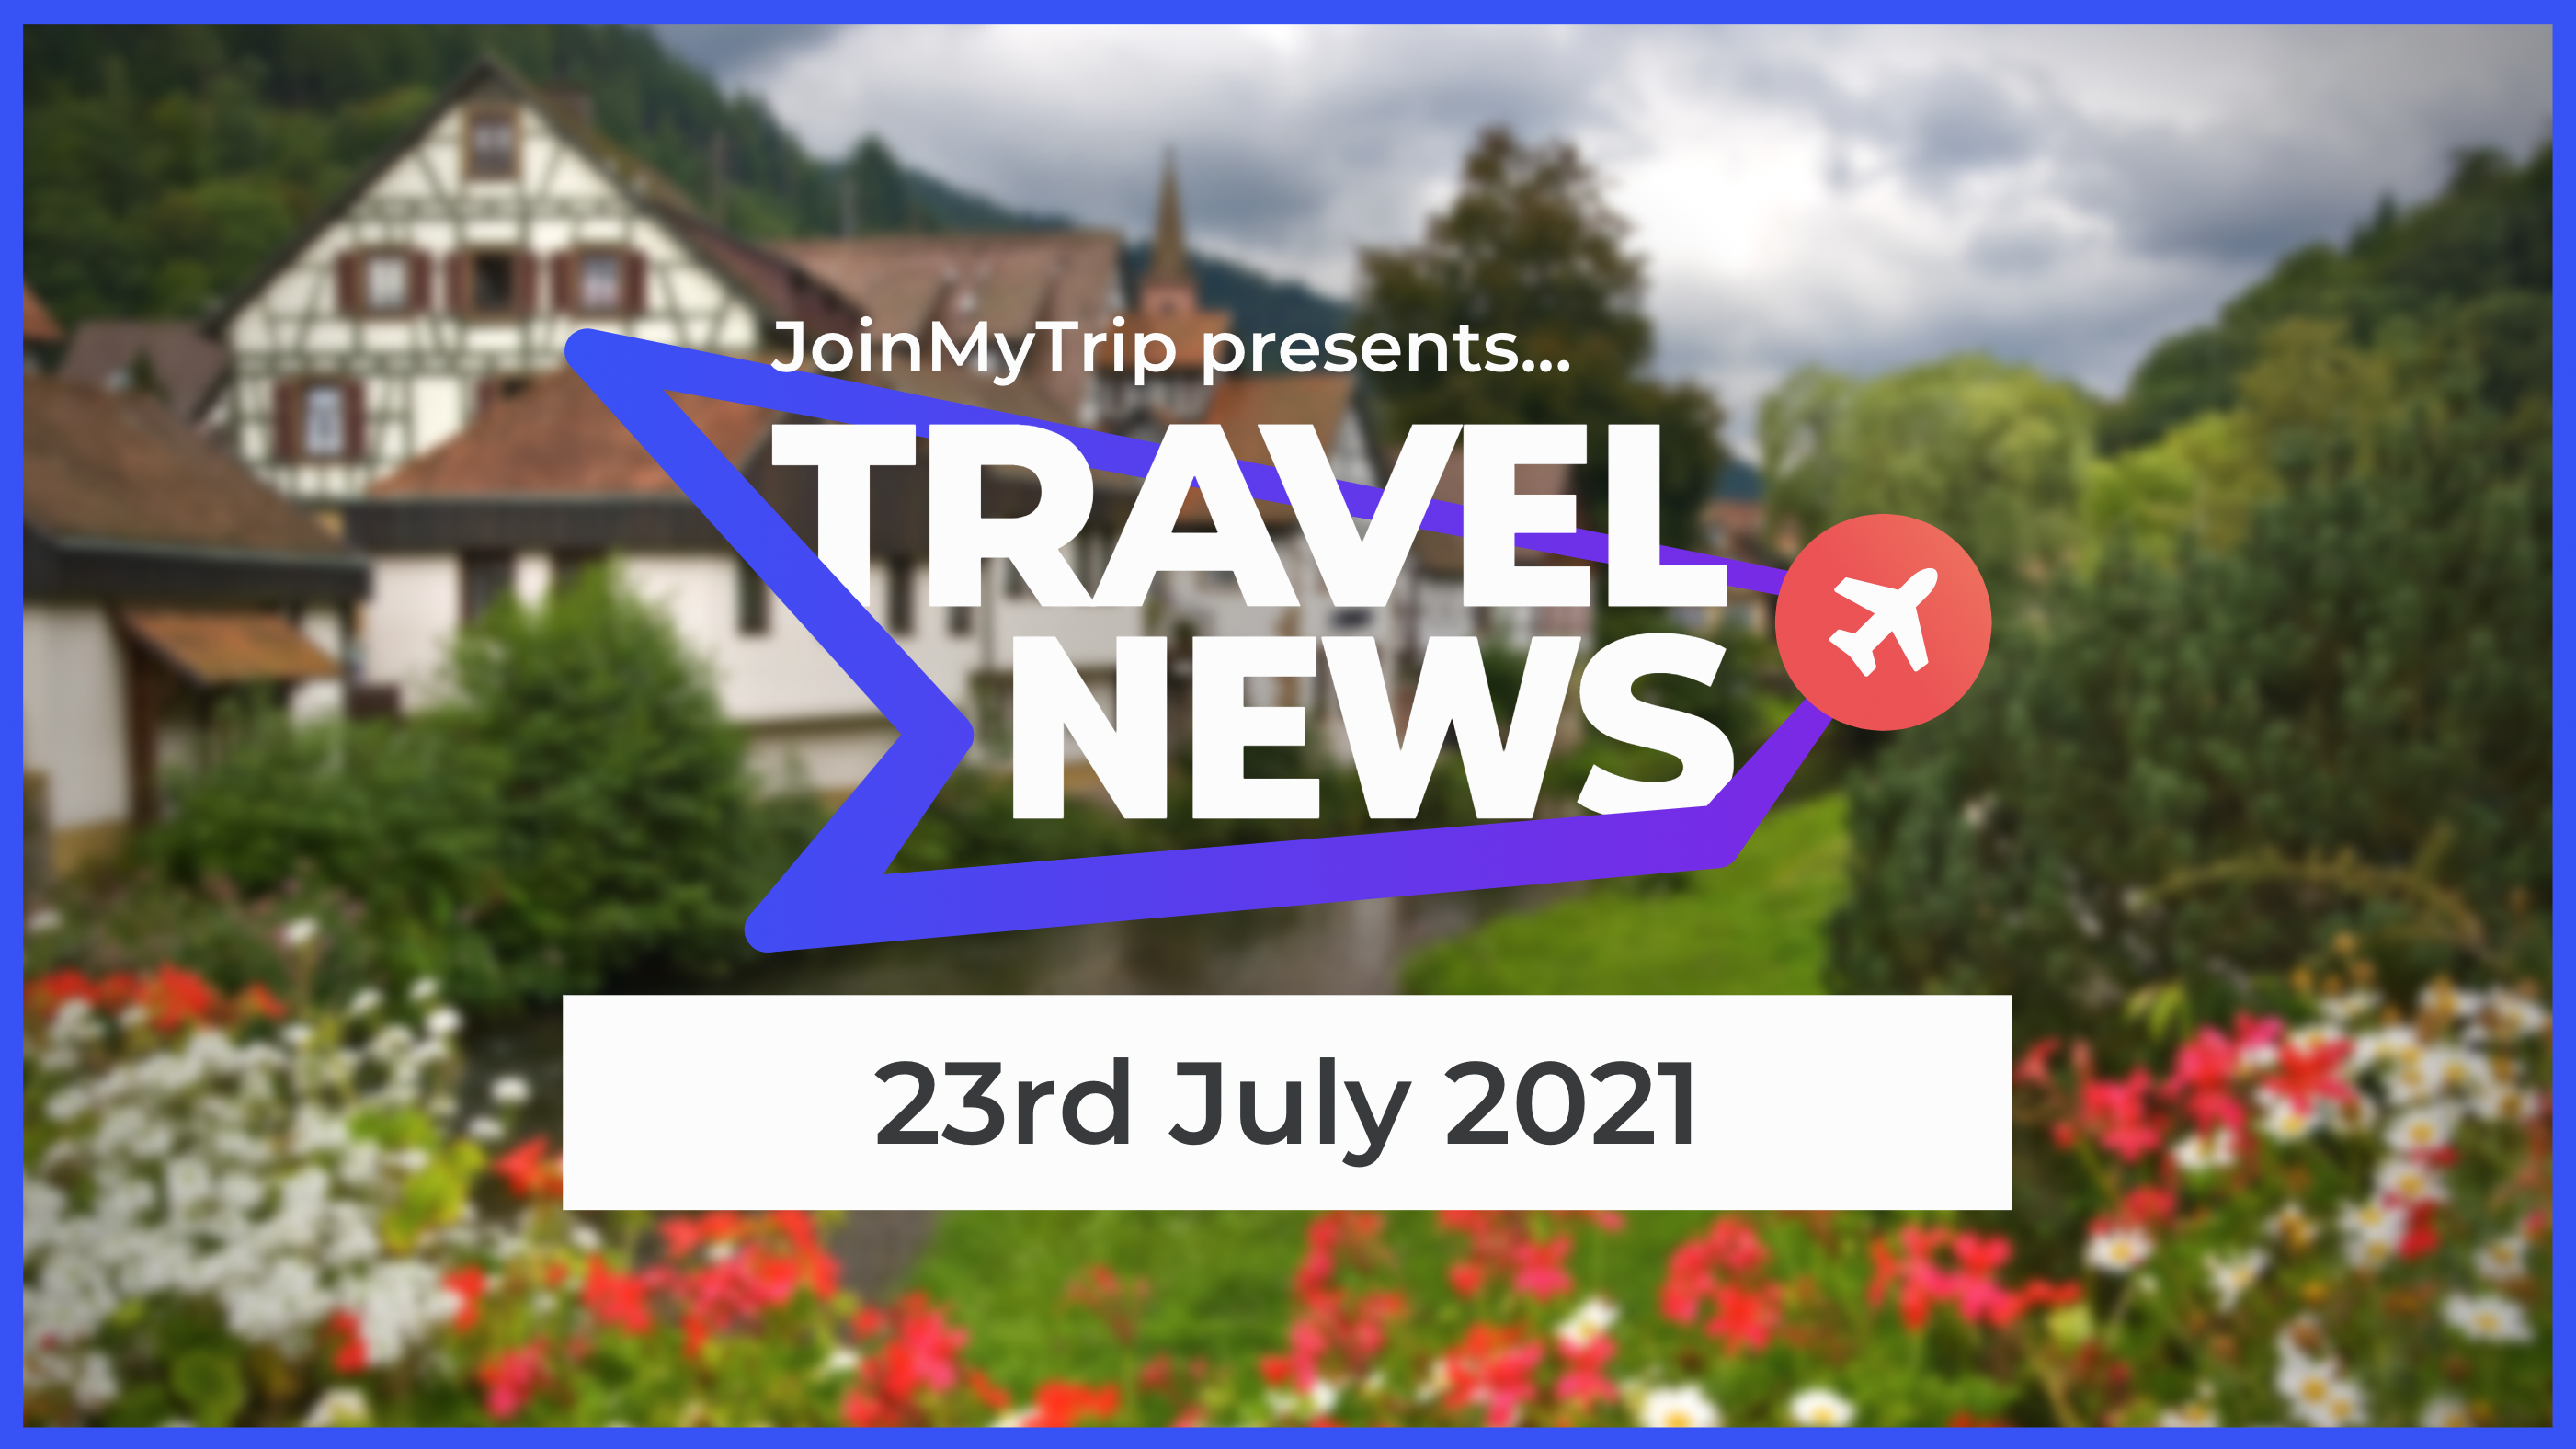 Travel News on 23rd of July